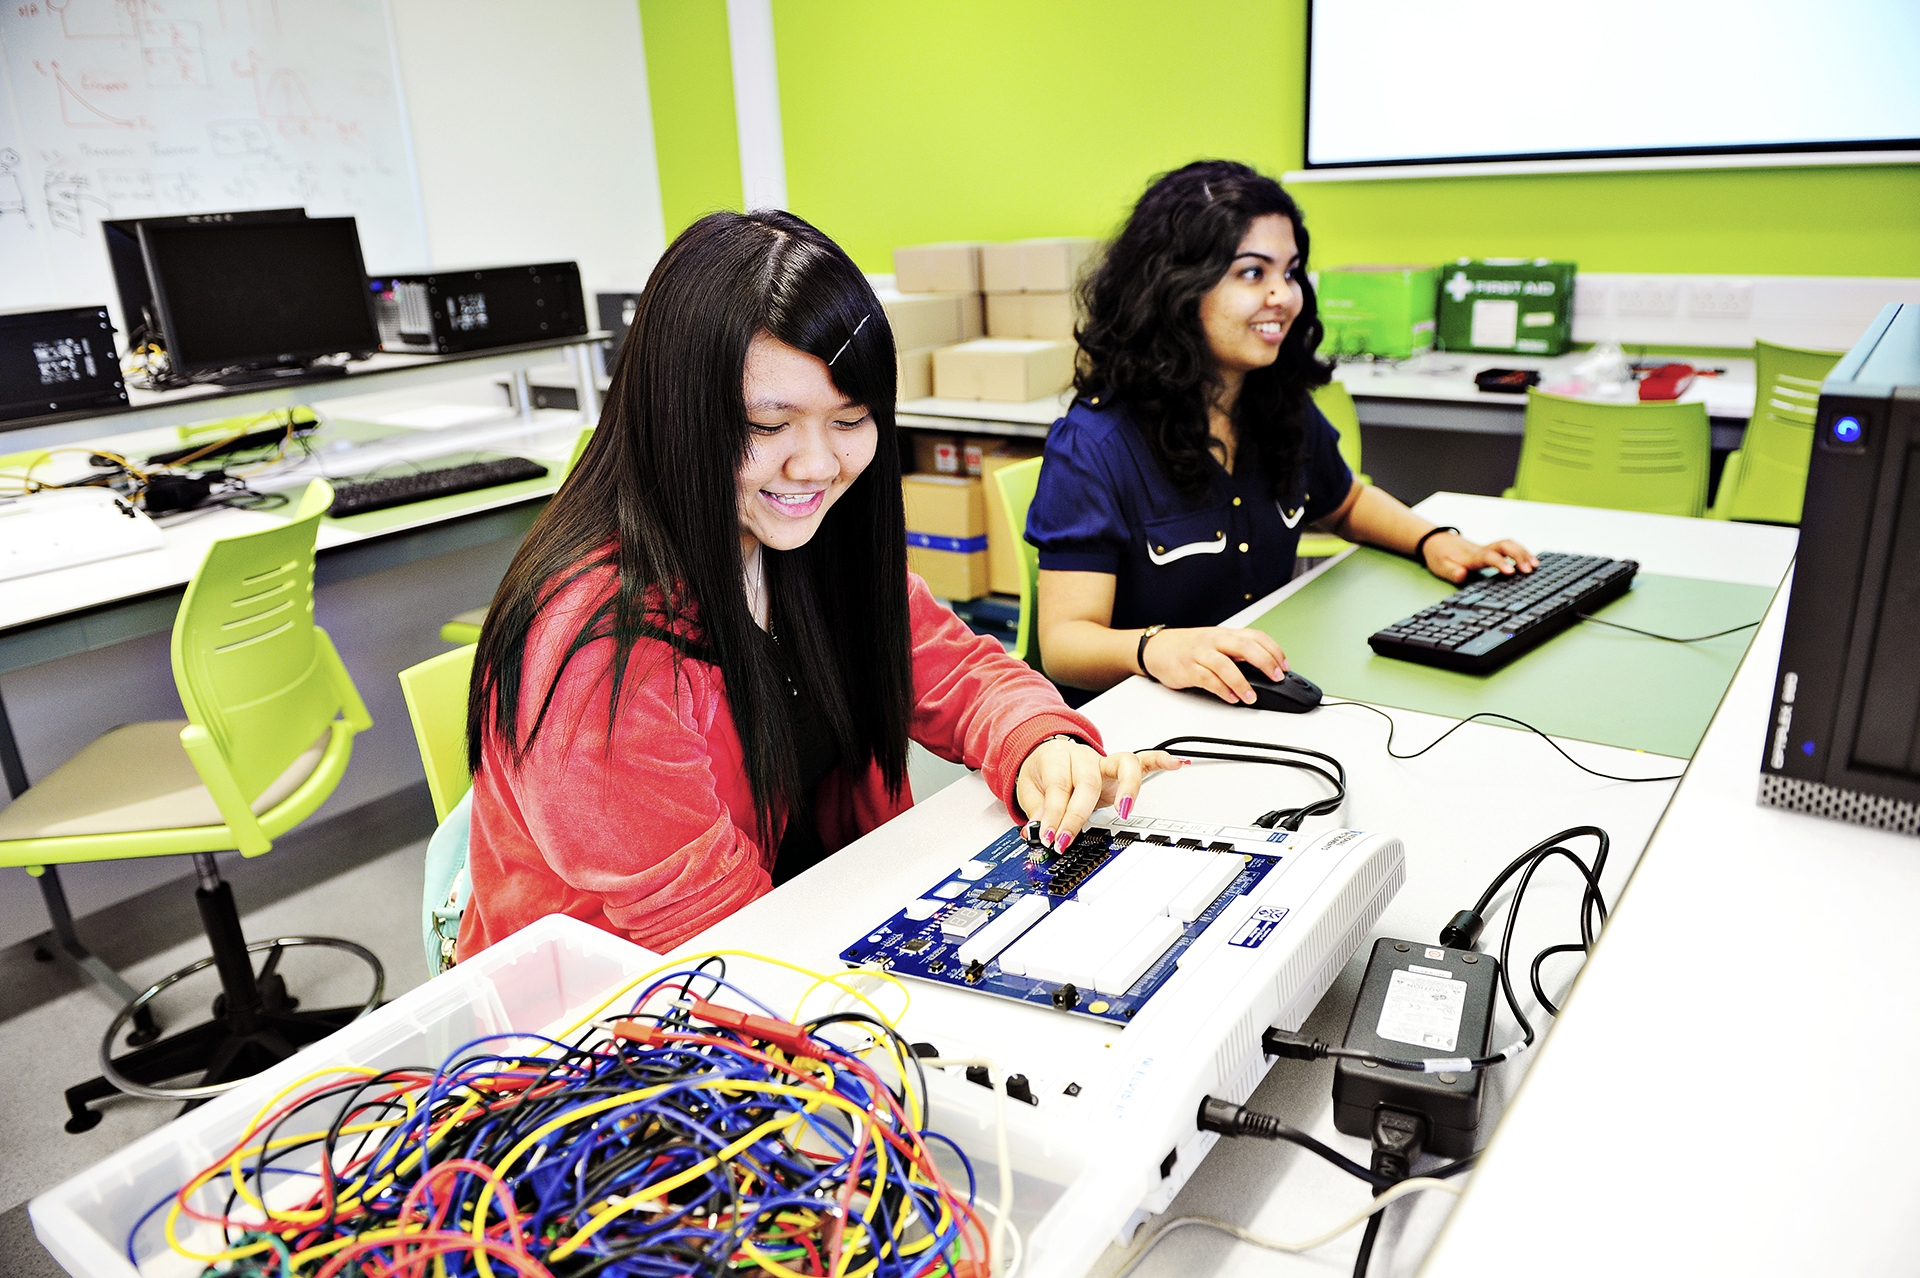 Two INTO international students in an electronics lab, one studying on a computer, the other on an electrical unit